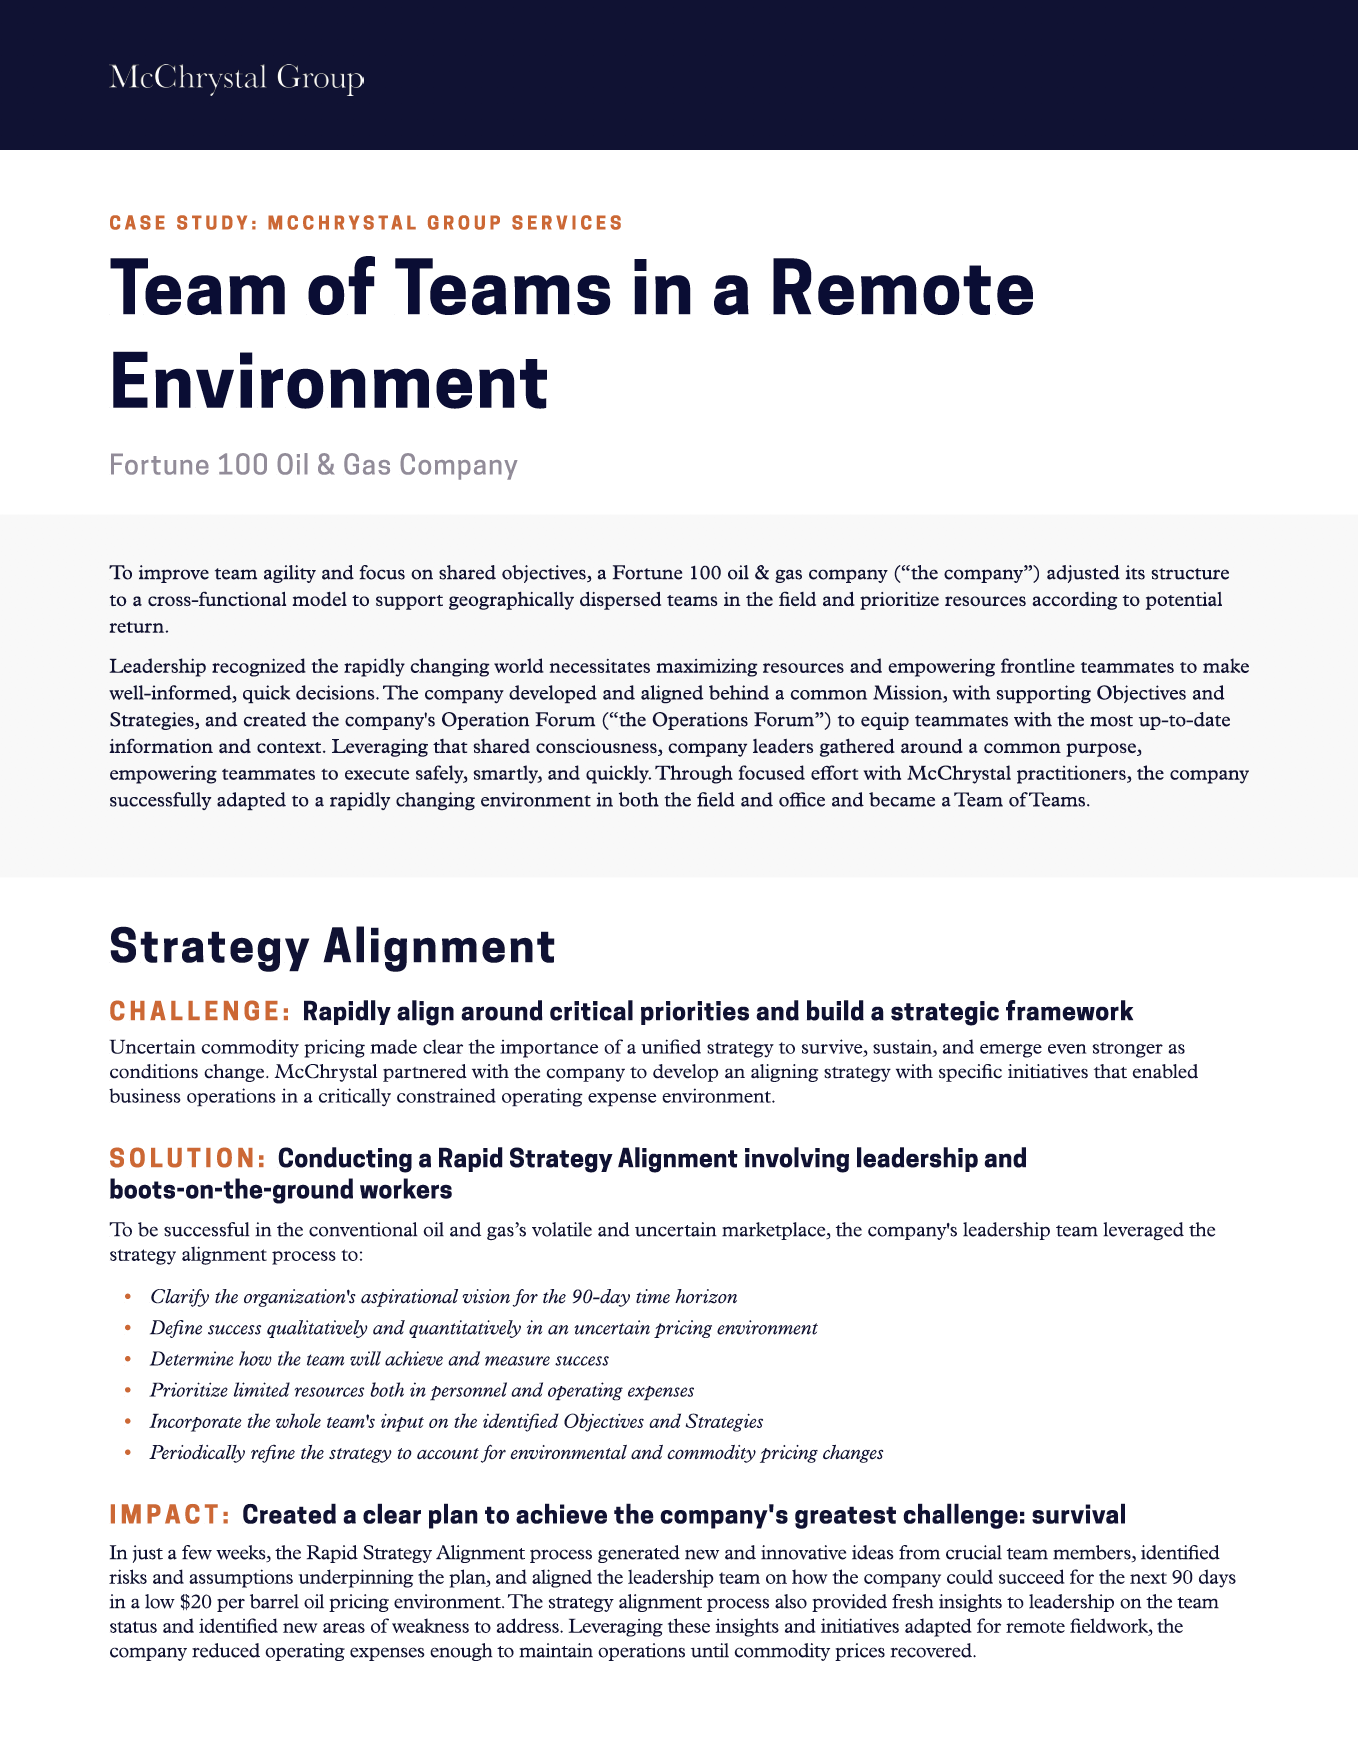 Preview of McChrystal Case Study: Team of Teams in a Remote Environment